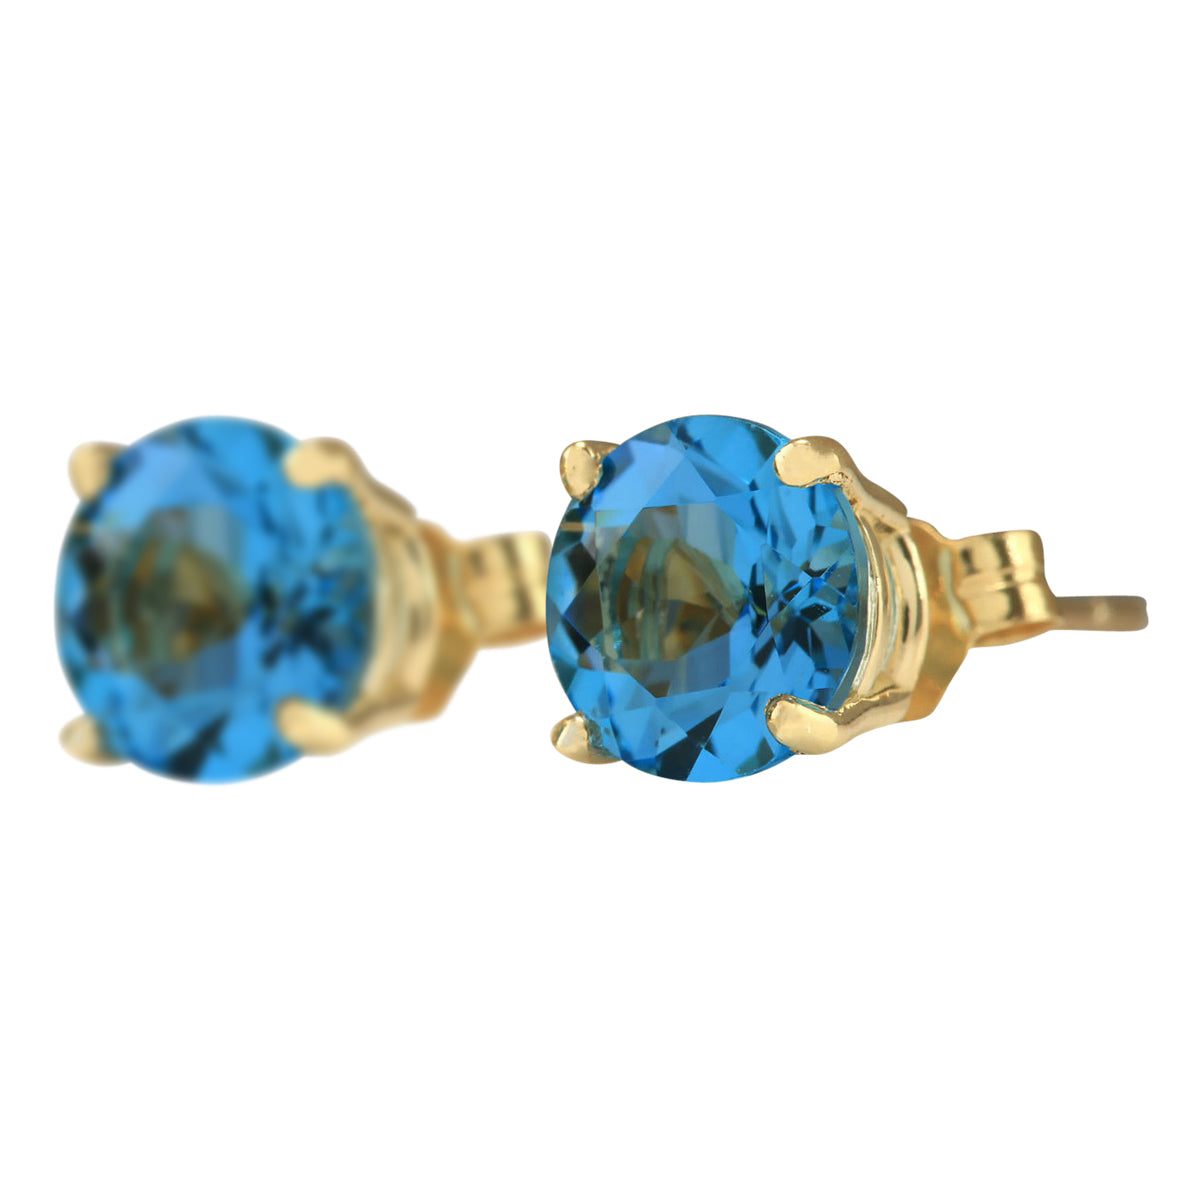 3.00 Carat Natural Topaz 14K Yellow Gold Earrings